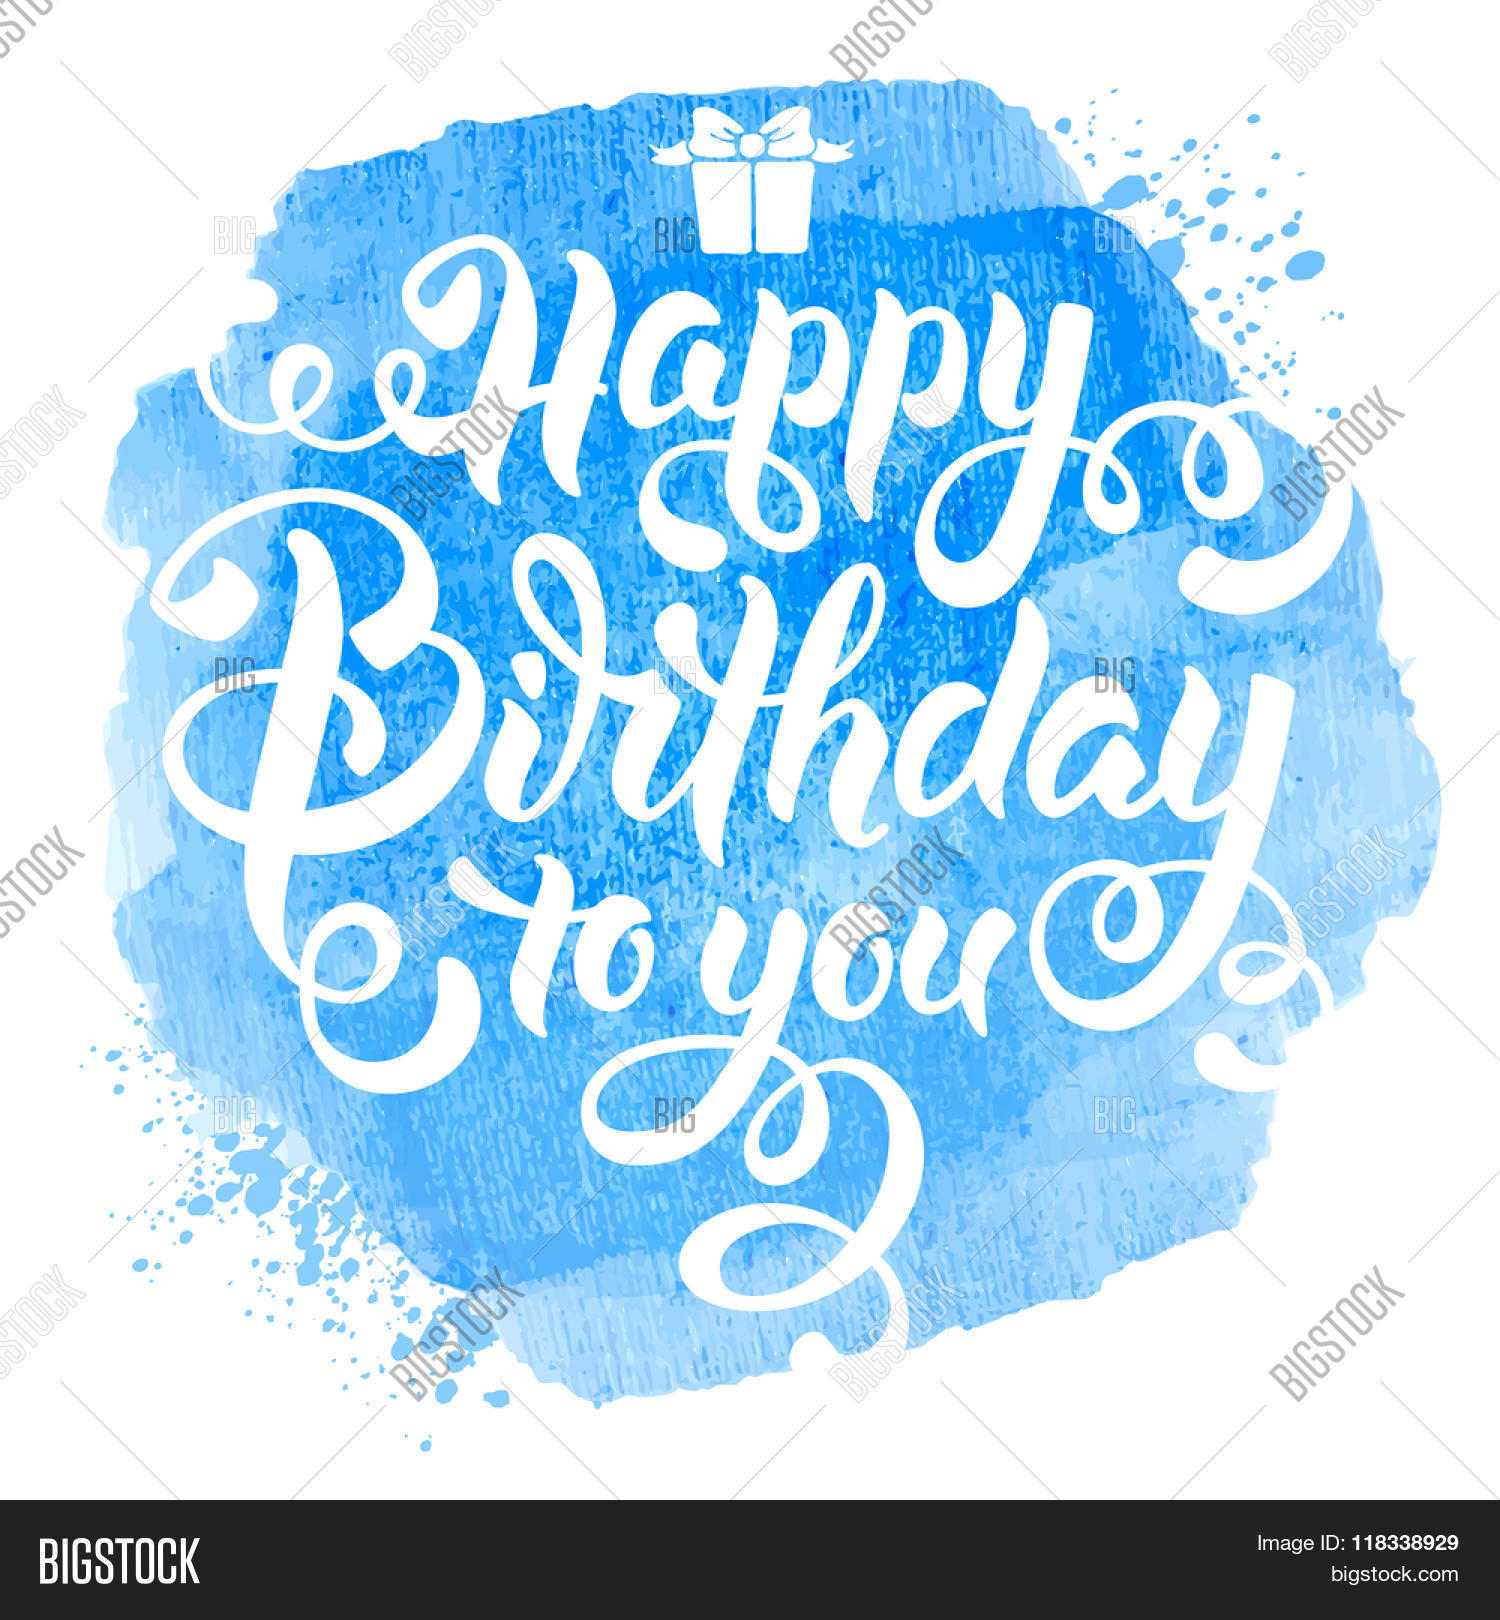 festive calligraphic hand drawn greeting lettering text overlay for birthday happy birthday to you